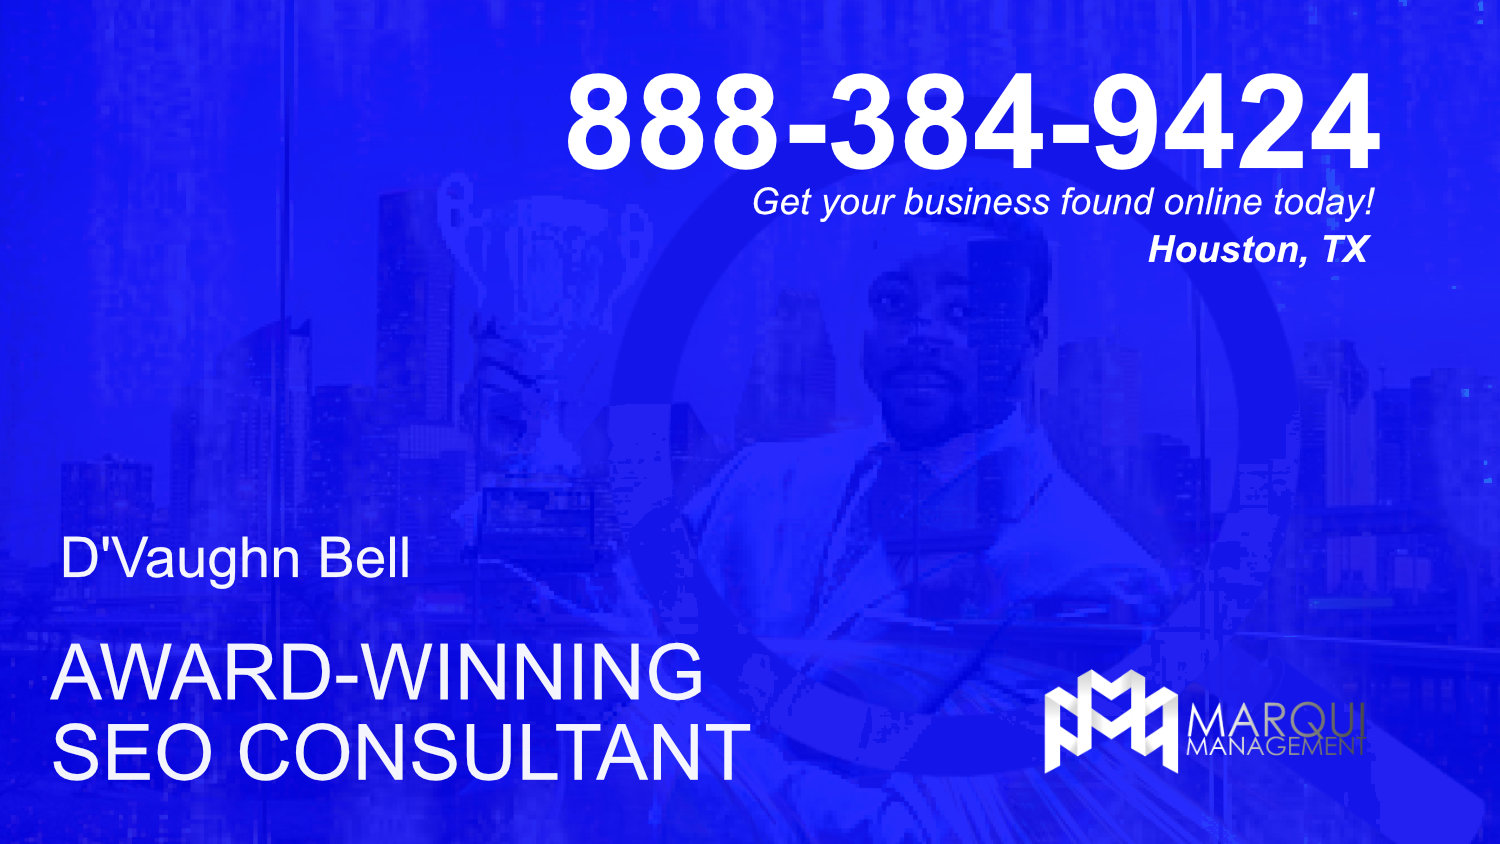 houston-seo-expert-consultant-dvaughn-bell-reputation-marketing-consulting-search-engine-optimization-texas-tx